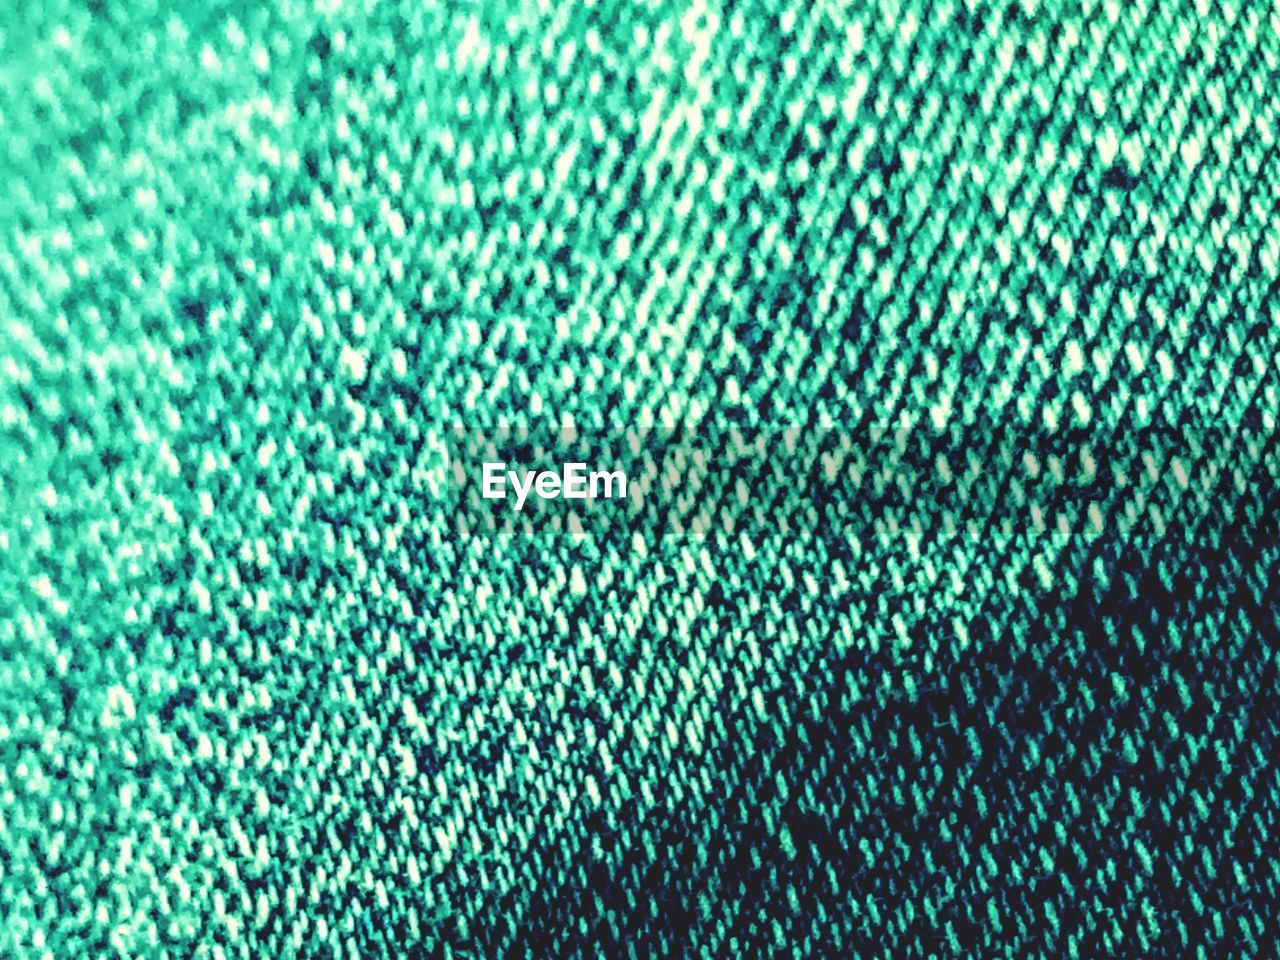 full frame, backgrounds, textile, green color, close-up, no people, pattern, textured, indoors, wool, selective focus, industry, large group of objects, abstract, technology, copy space, clothing, garment, blue, defocused, softness